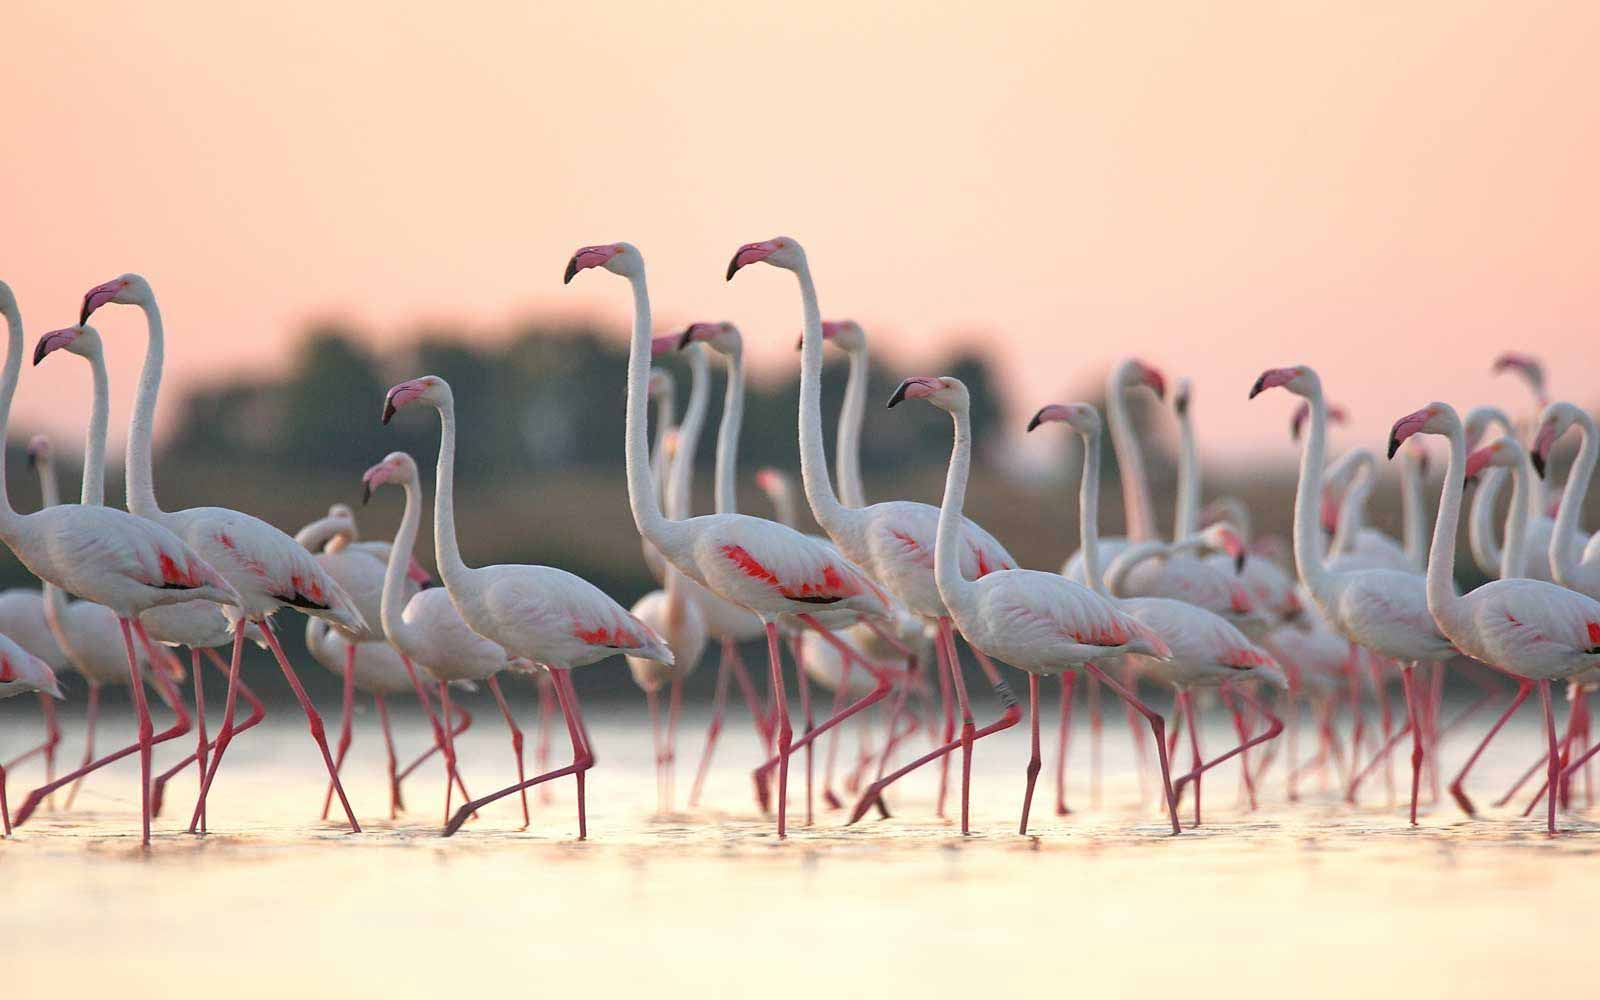 Flamingos can be found very close to the Is Benas Country Lodge